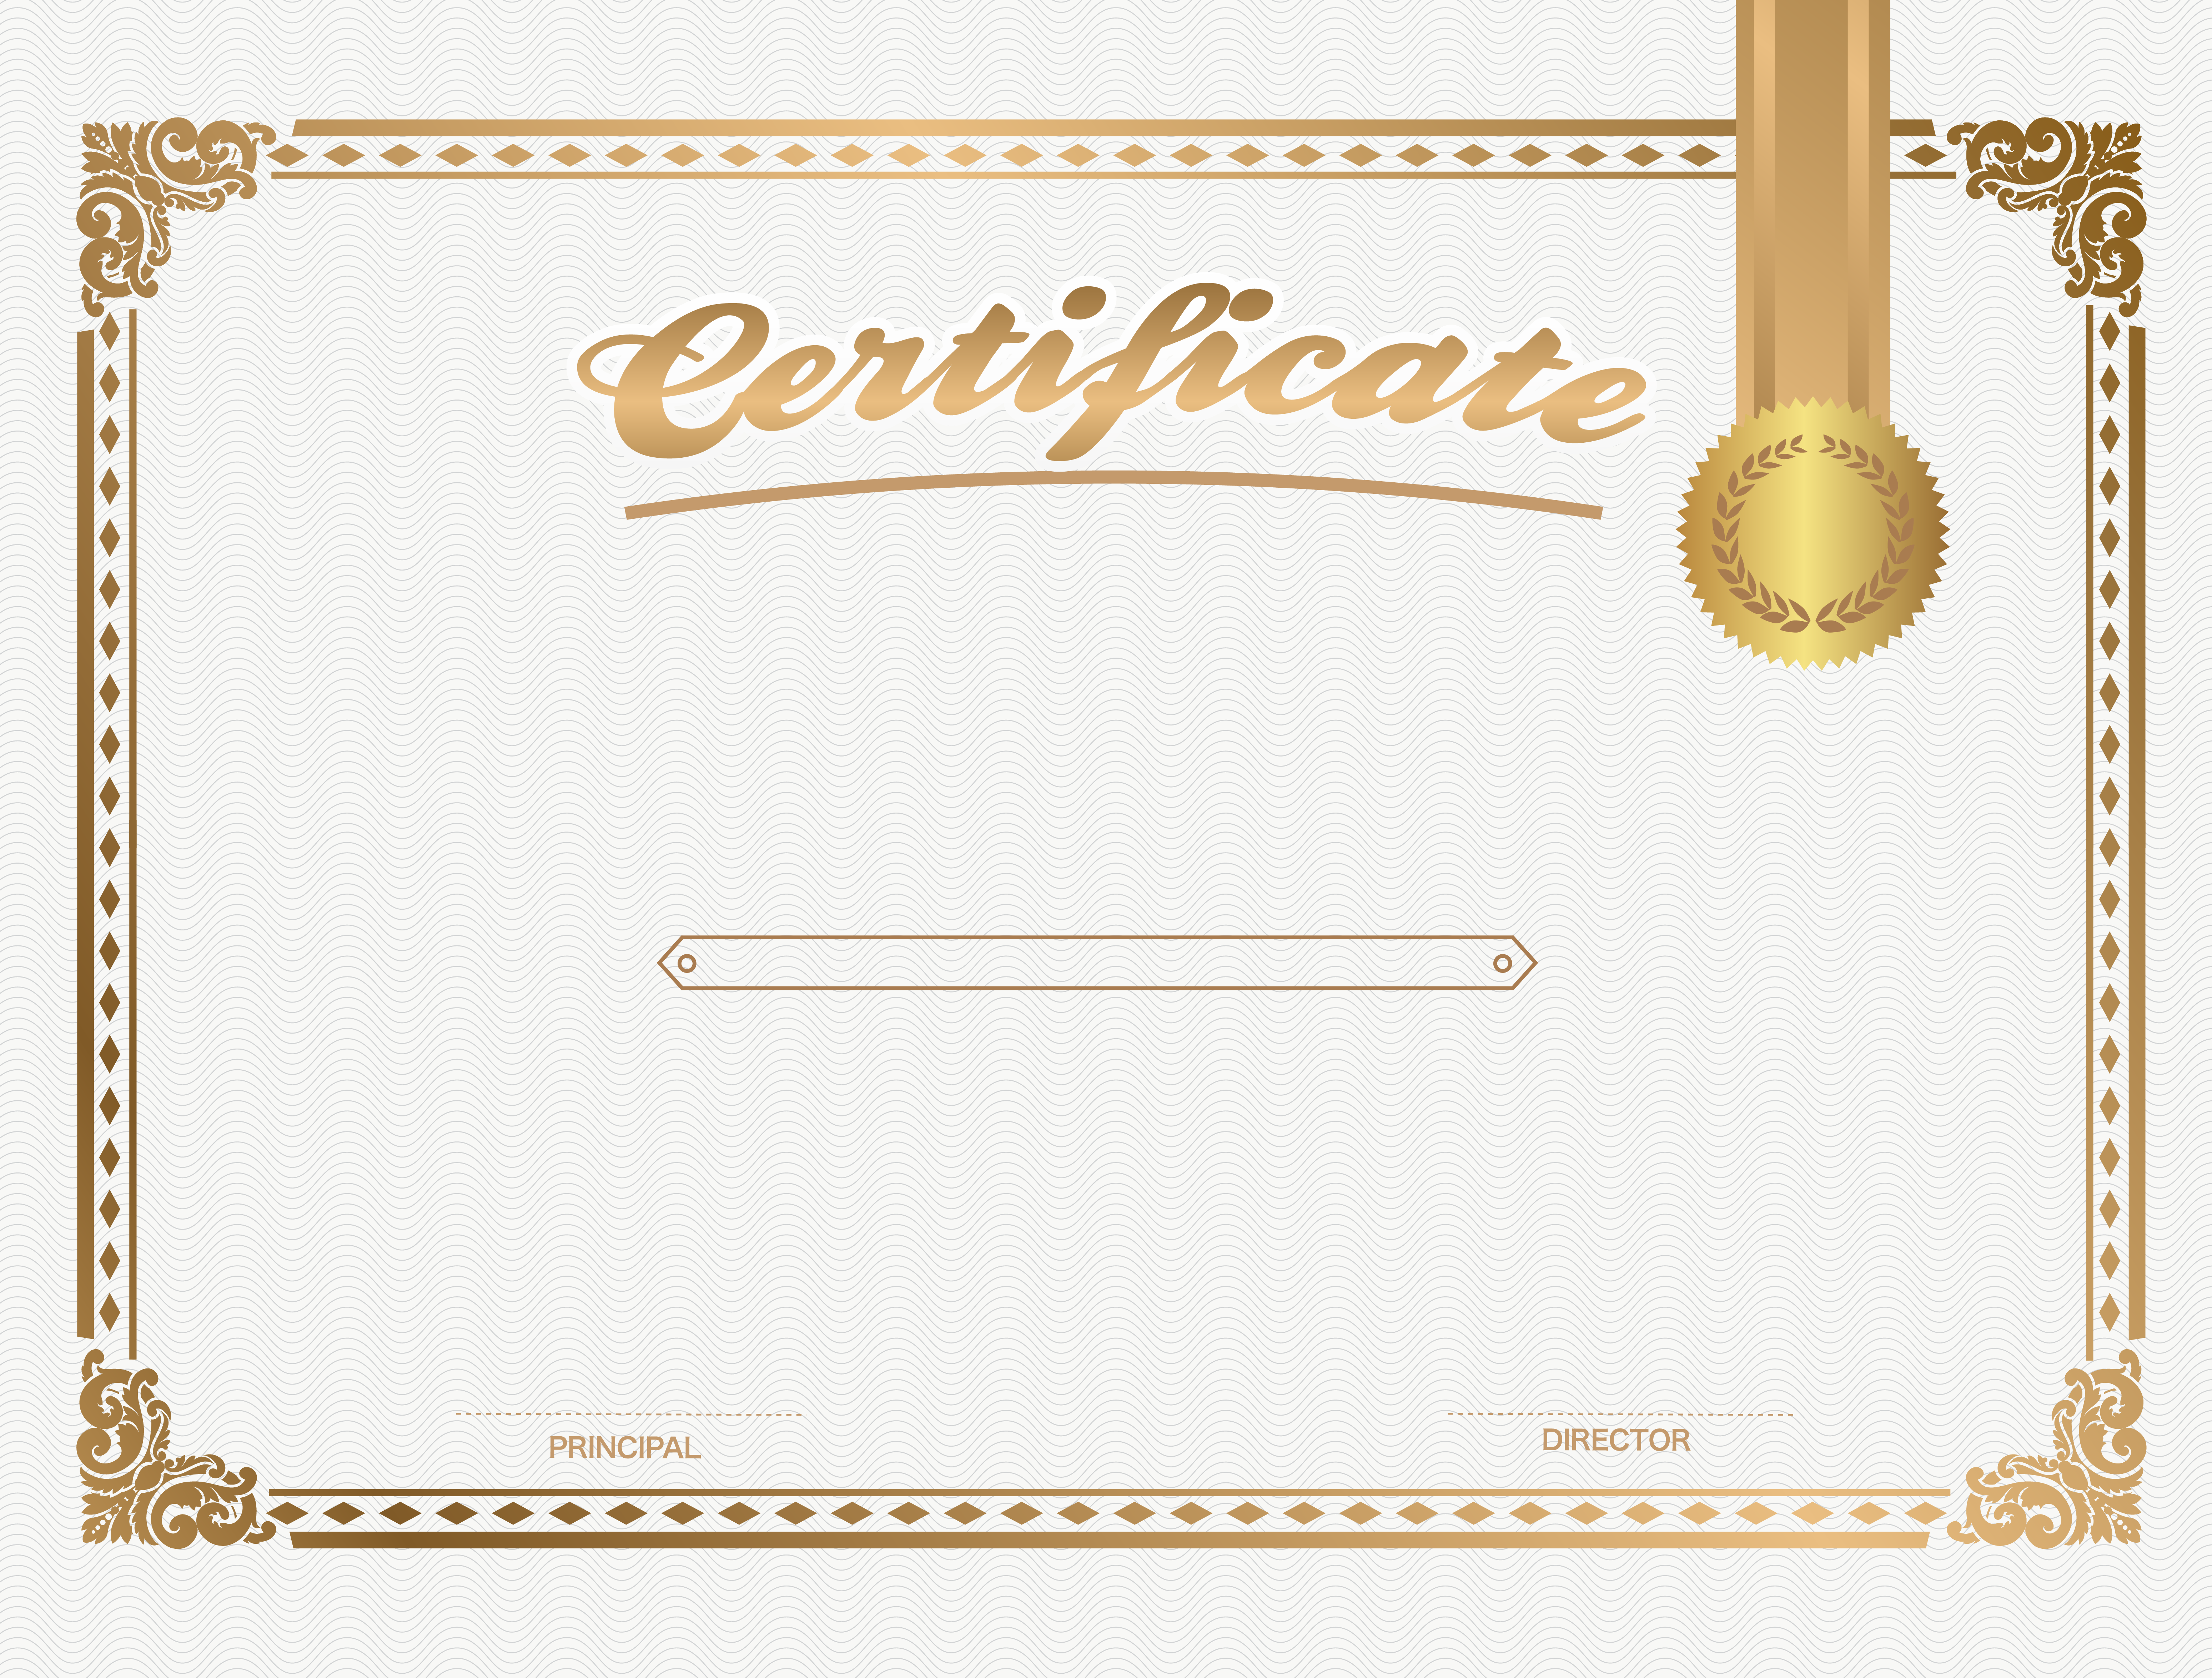 White Certificate Template PNG Image.